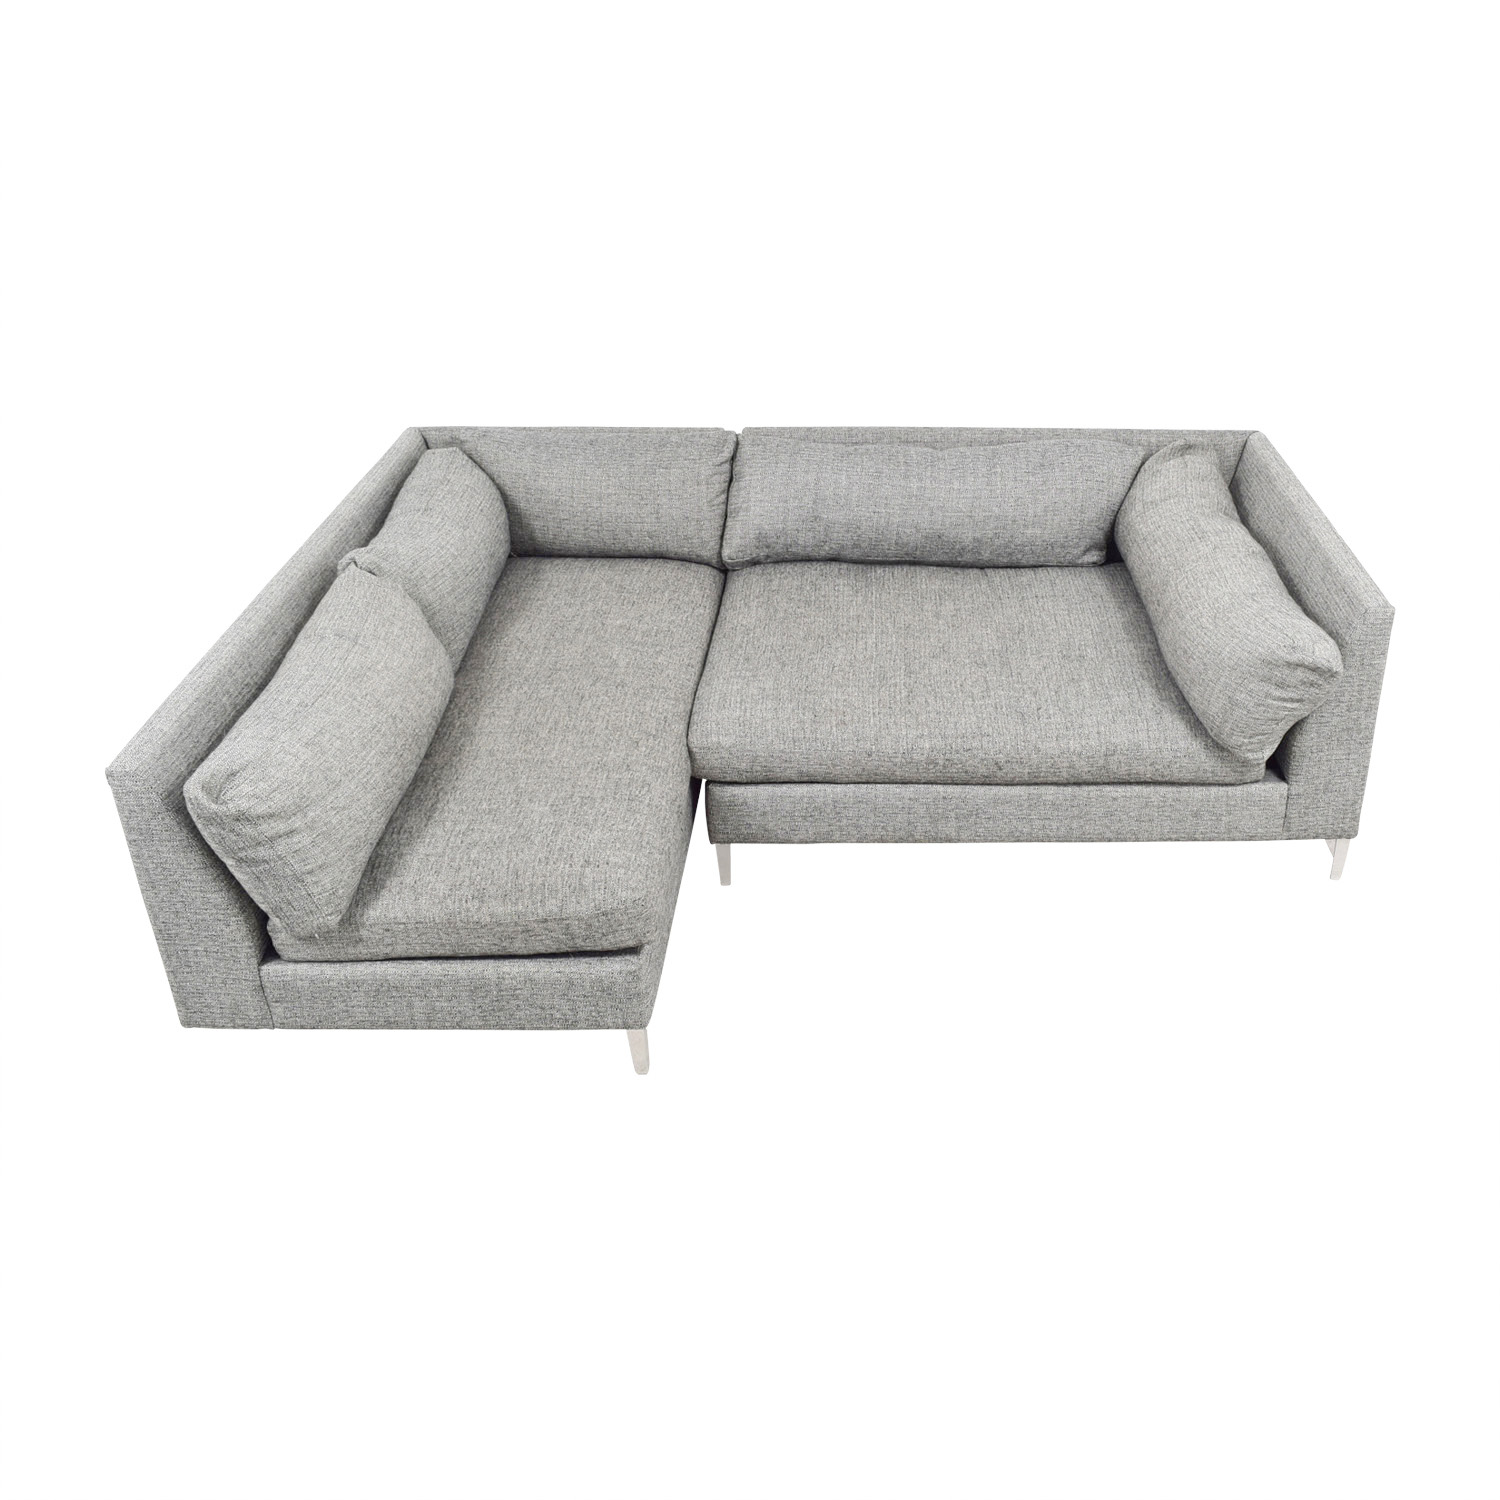 CB2 CB2 Decker Grey Sectional price